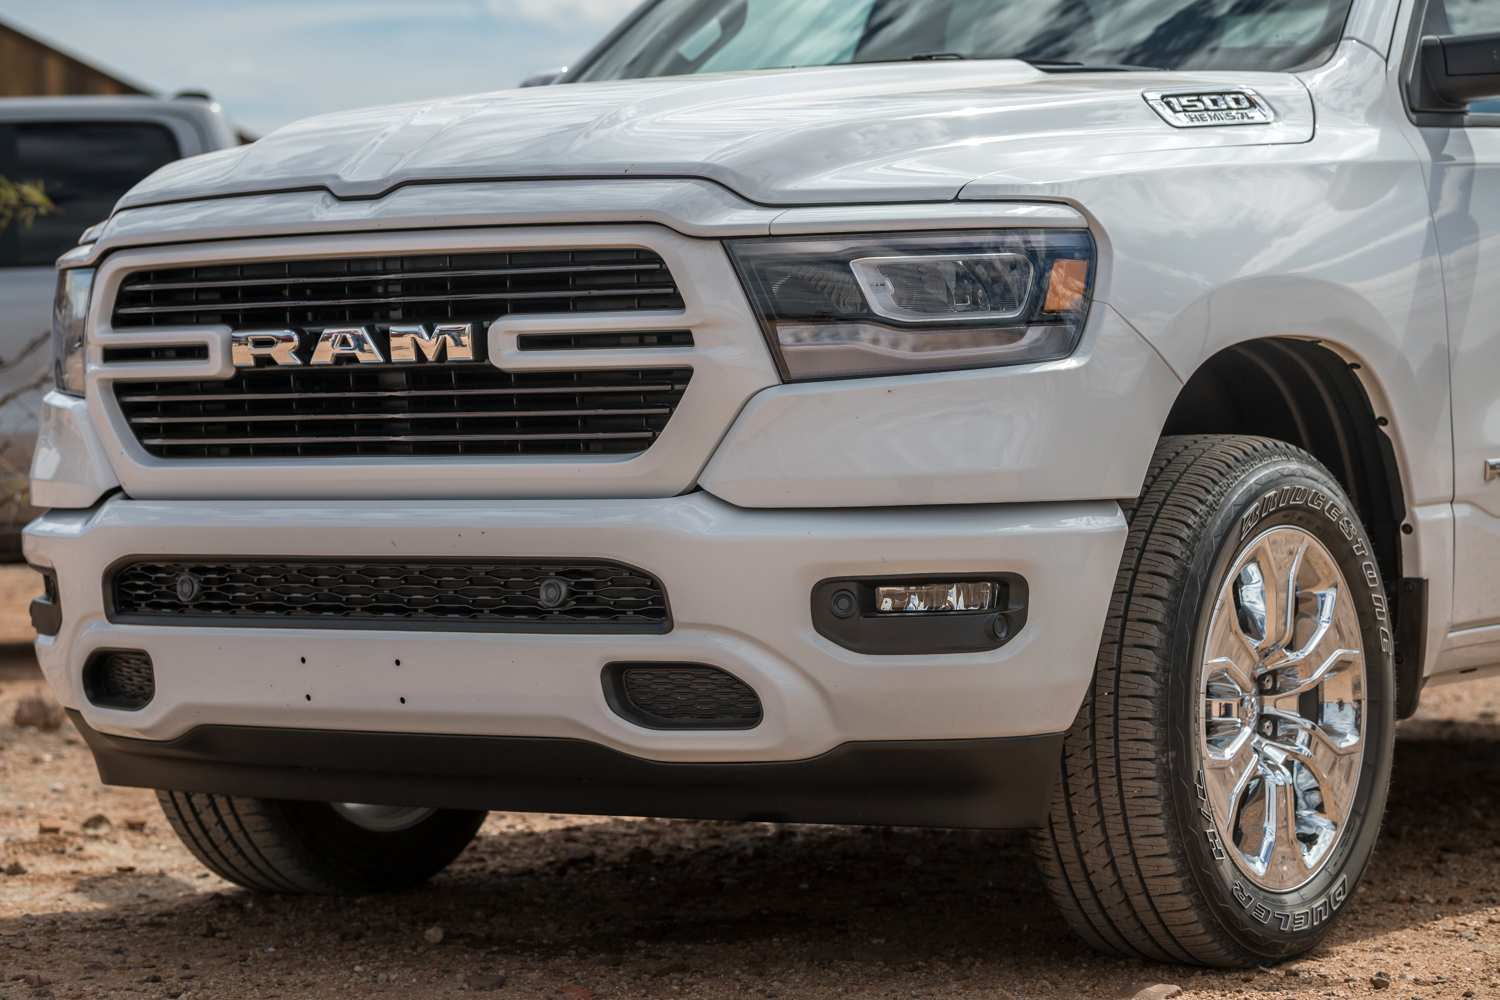 89 The 2019 Dodge Ram 1500 Images Release Date by 2019 Dodge Ram 1500 Images